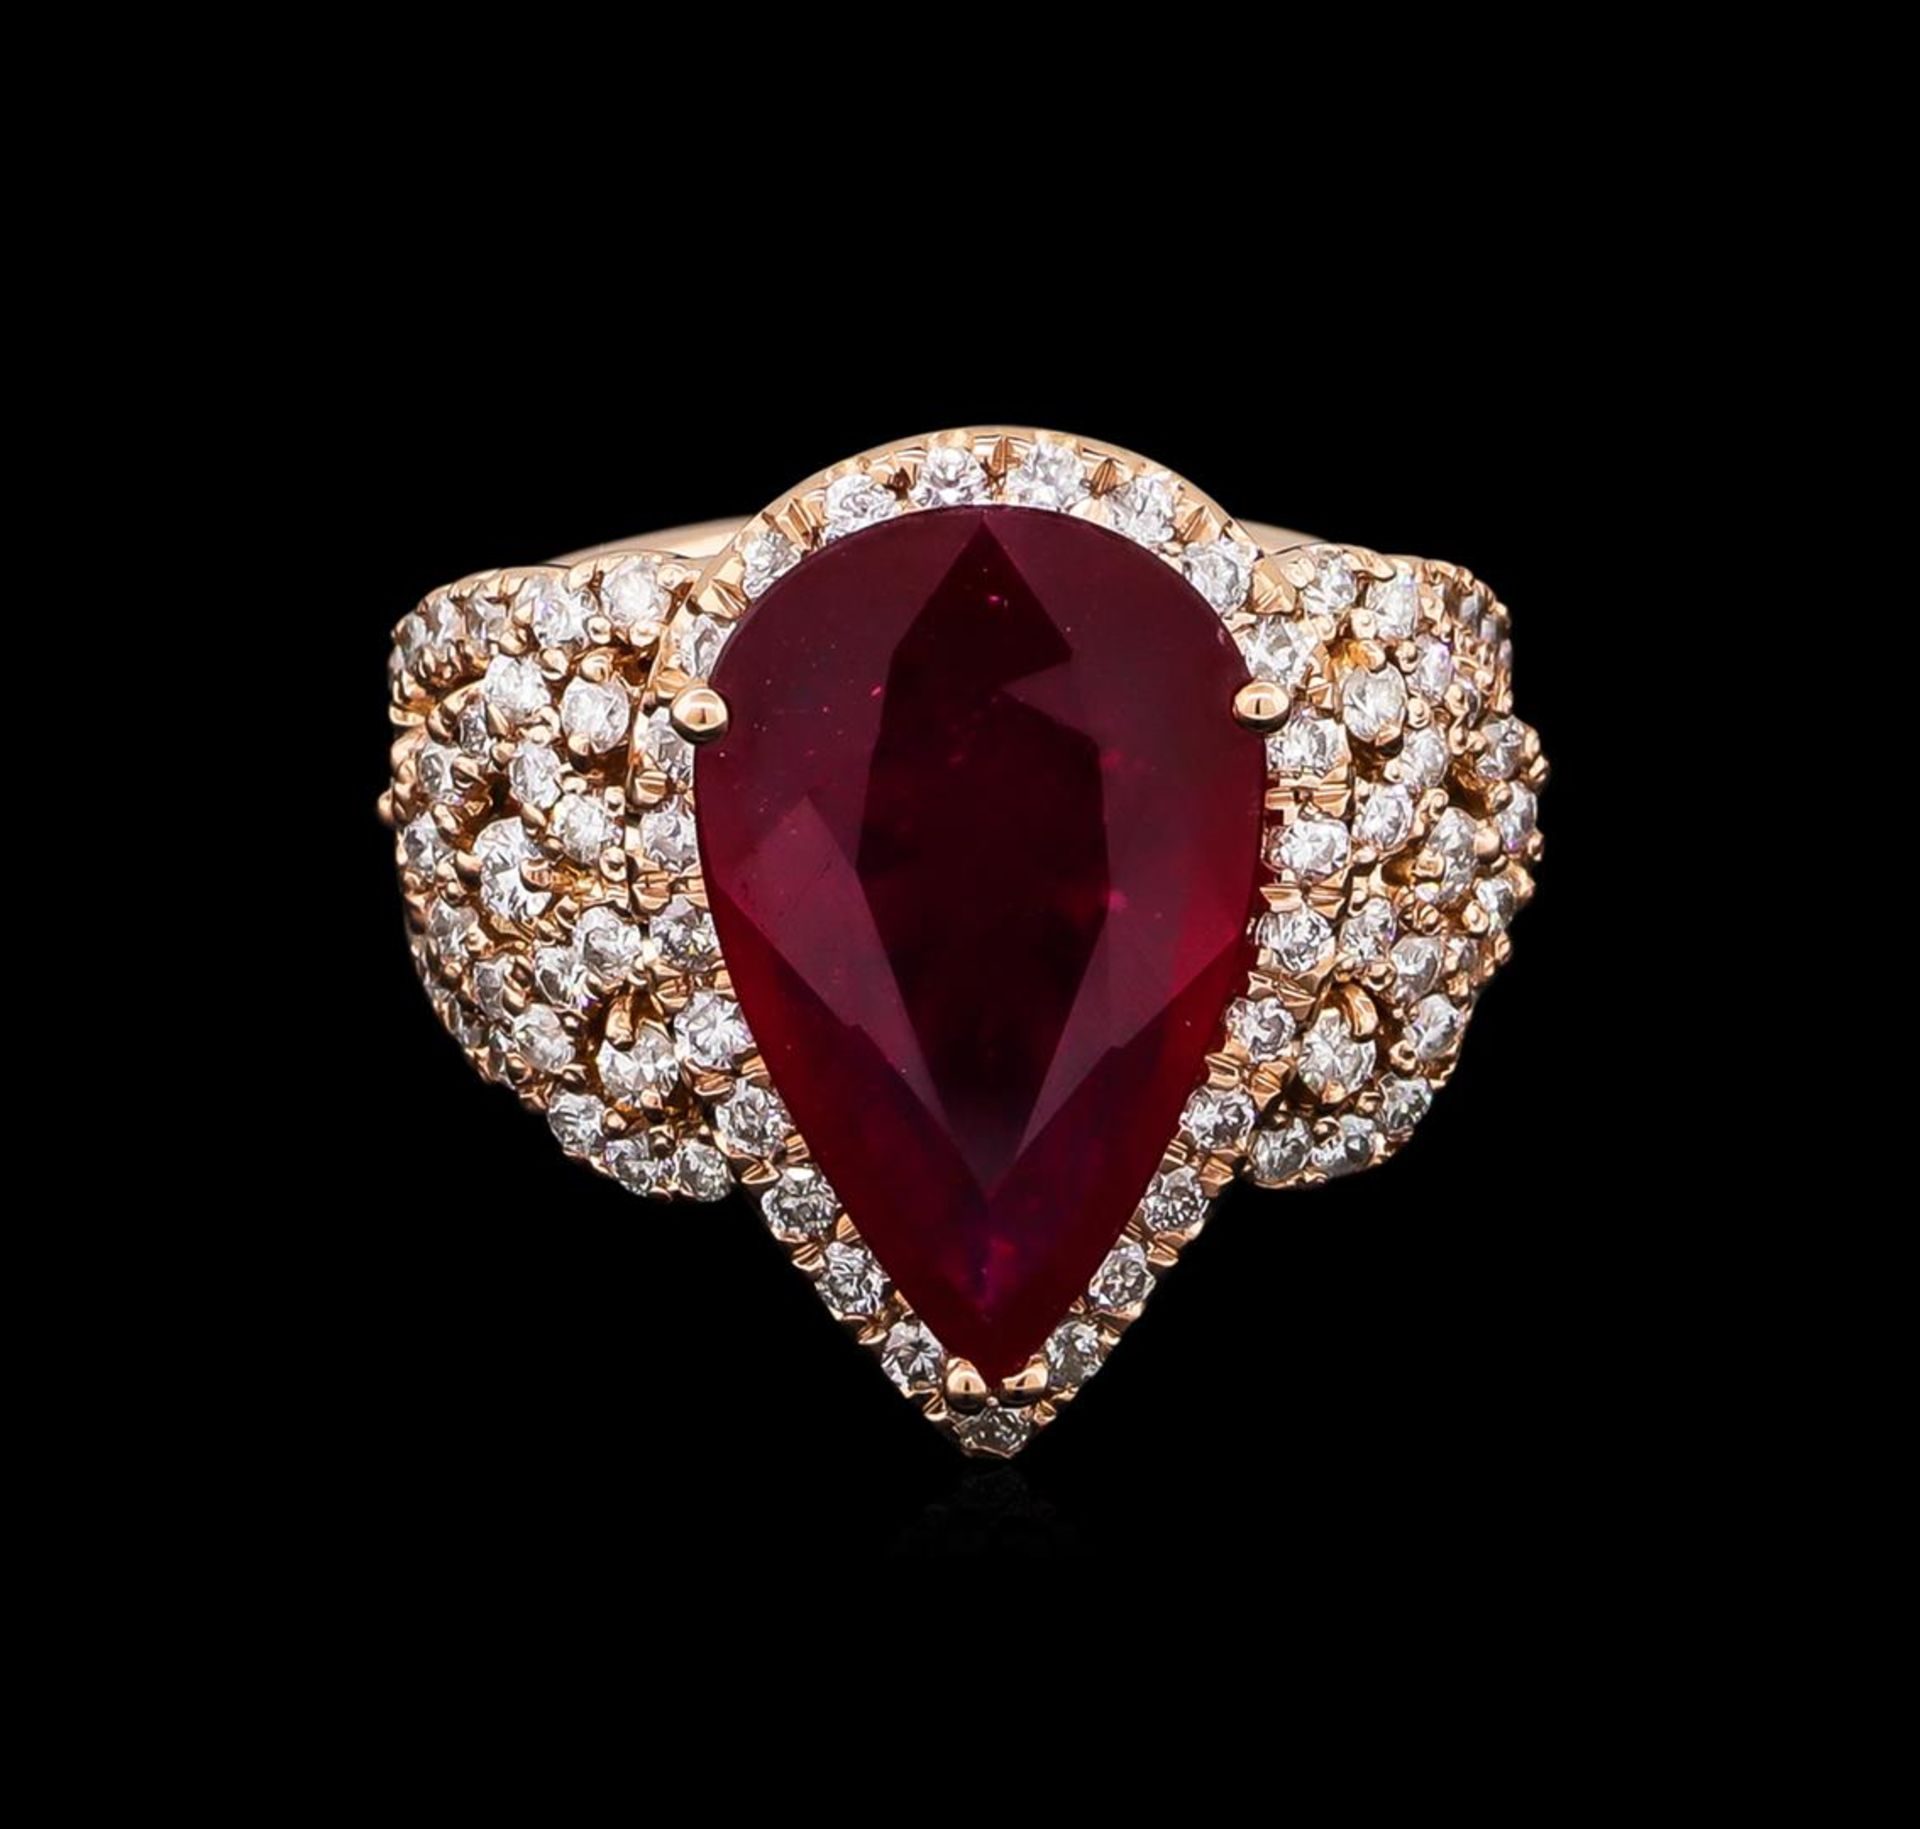 5.35ct Ruby and Diamond Ring - 14KT Rose Gold - Image 2 of 6